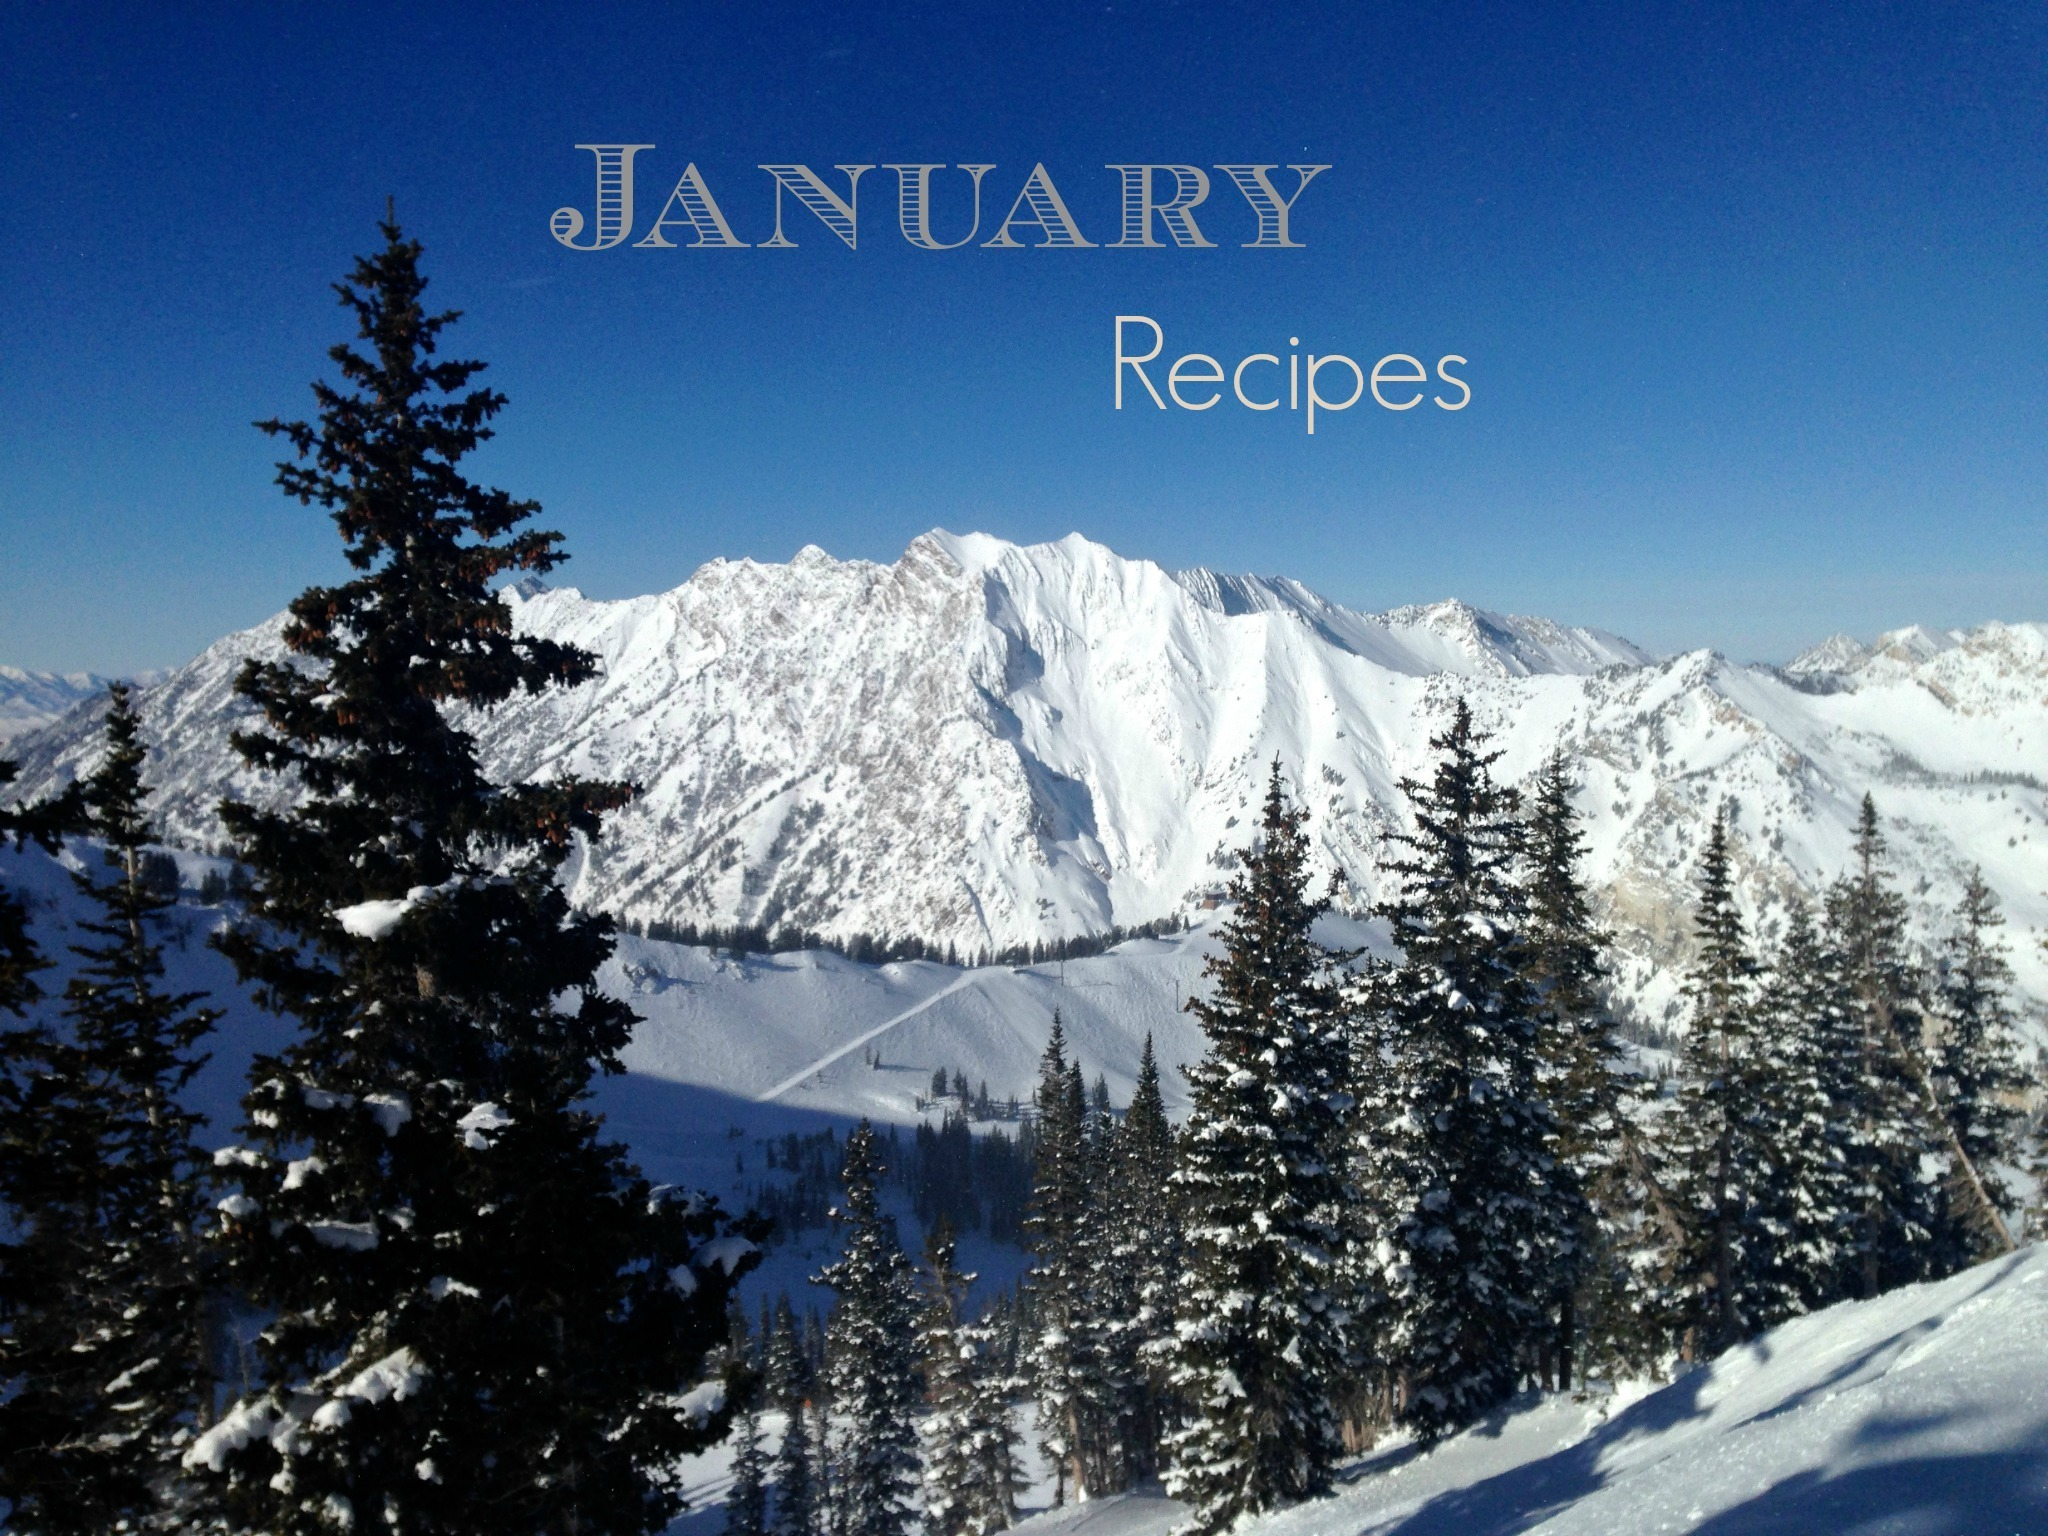 Cooking Inspiration for the Month